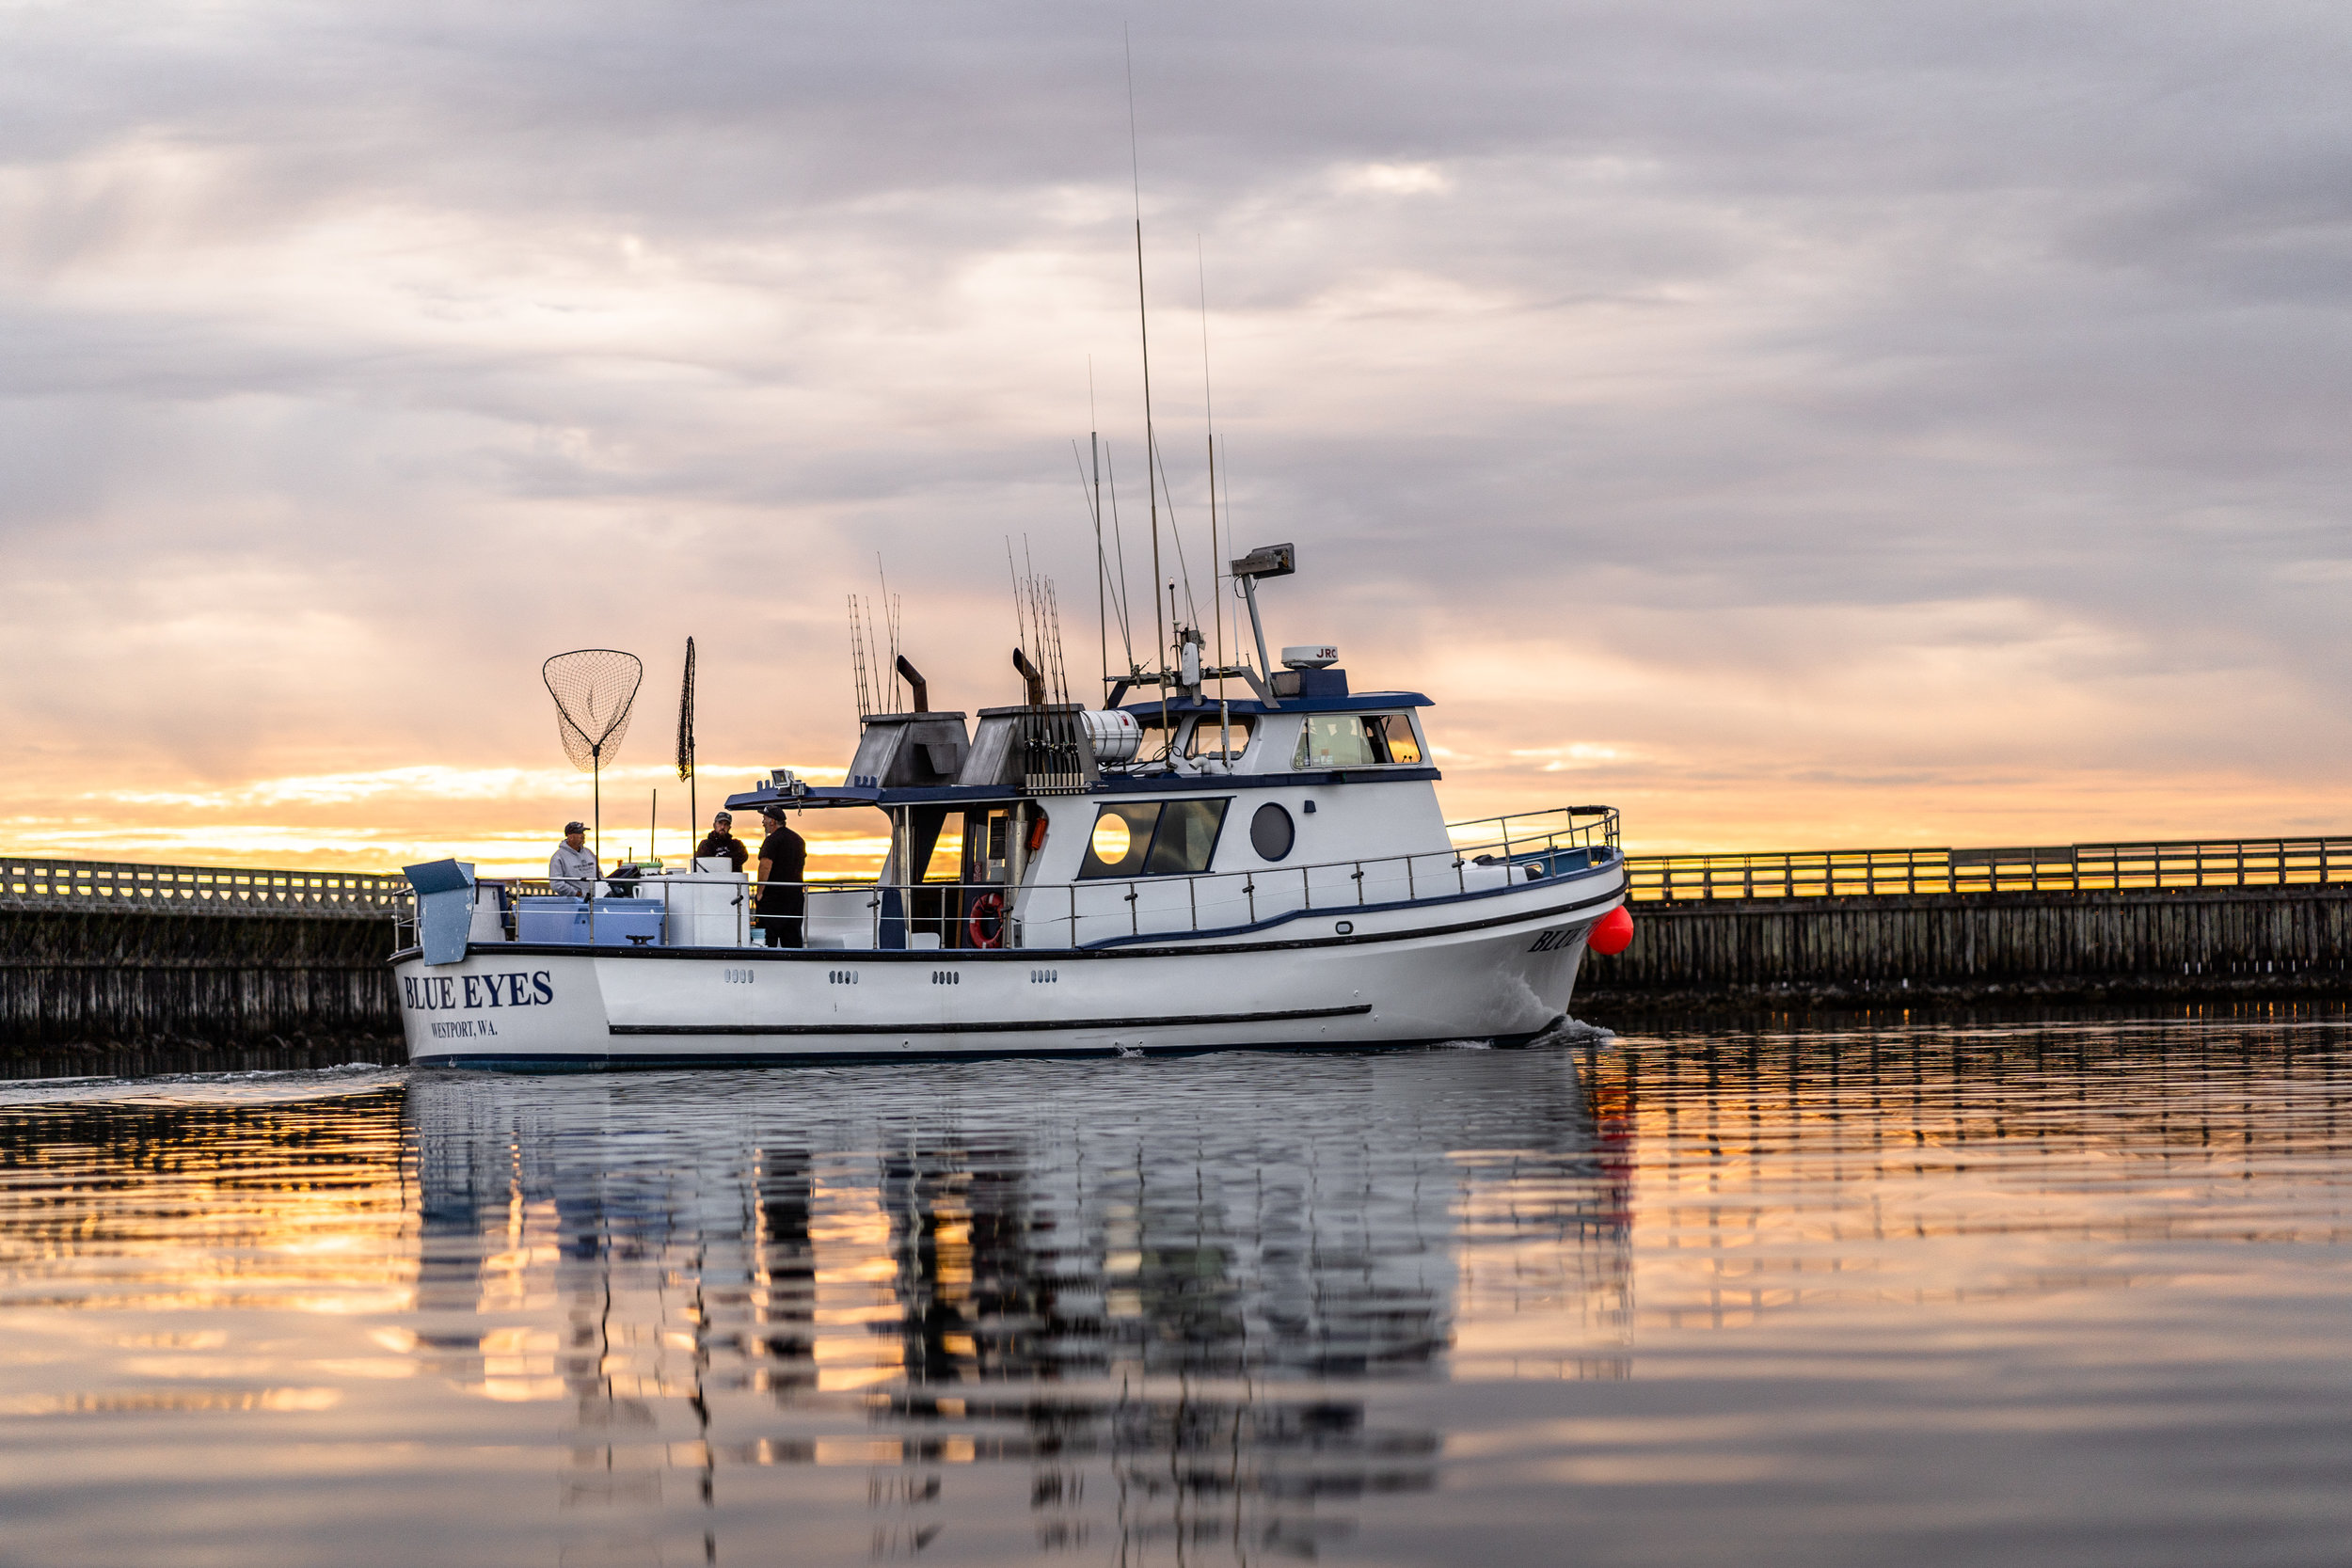 #7 Charter Fishing - Catch a big one! We have daily charters offering trips for: Halibut, Tuna, Salmon, Lingcod, and Crab.